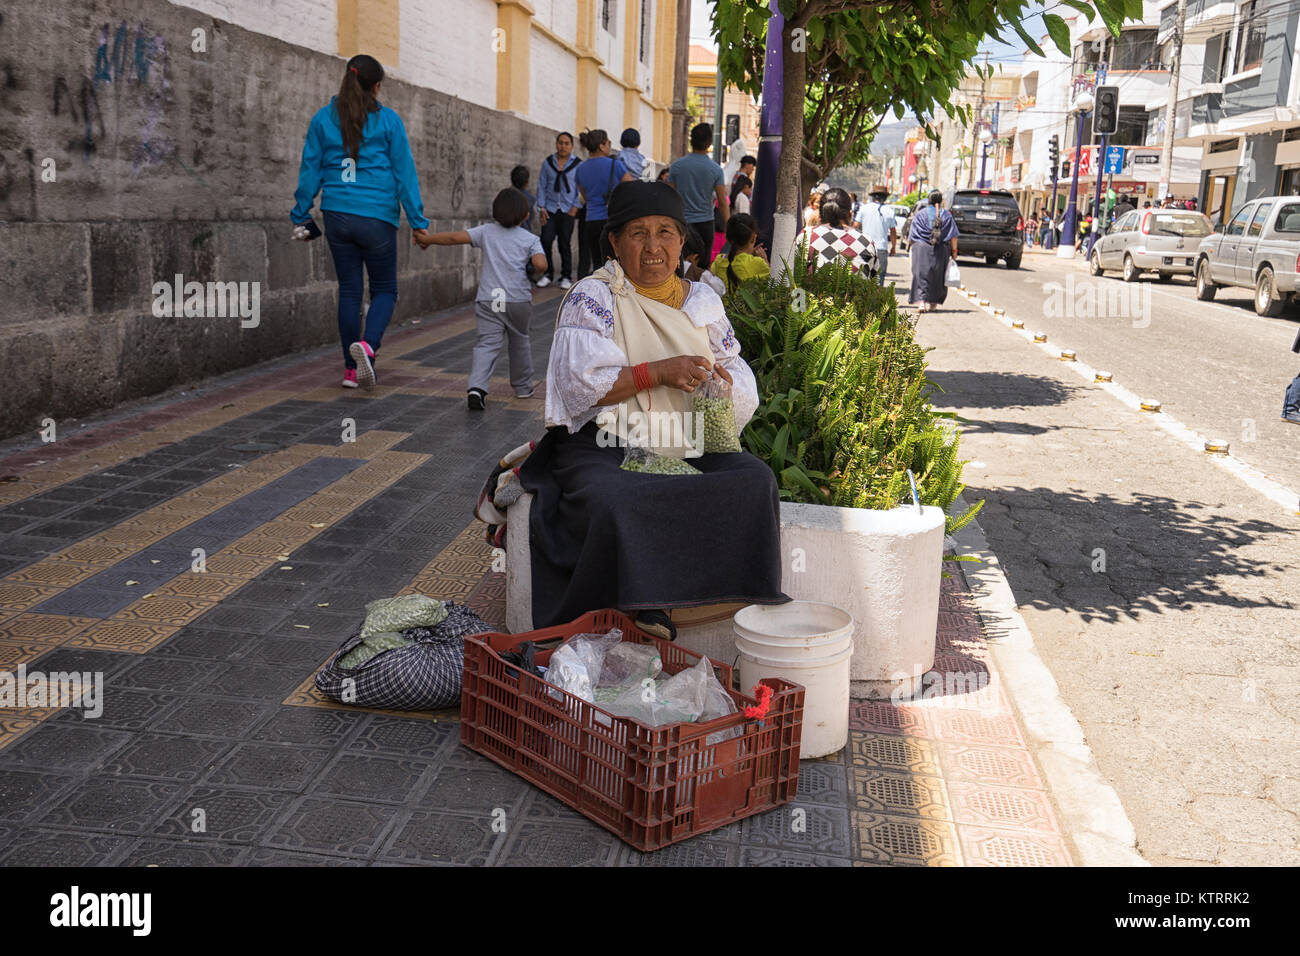 Otavalo, Ecuador-December 23, 2017: ndigenous woman selling peas on the street - Stock Image